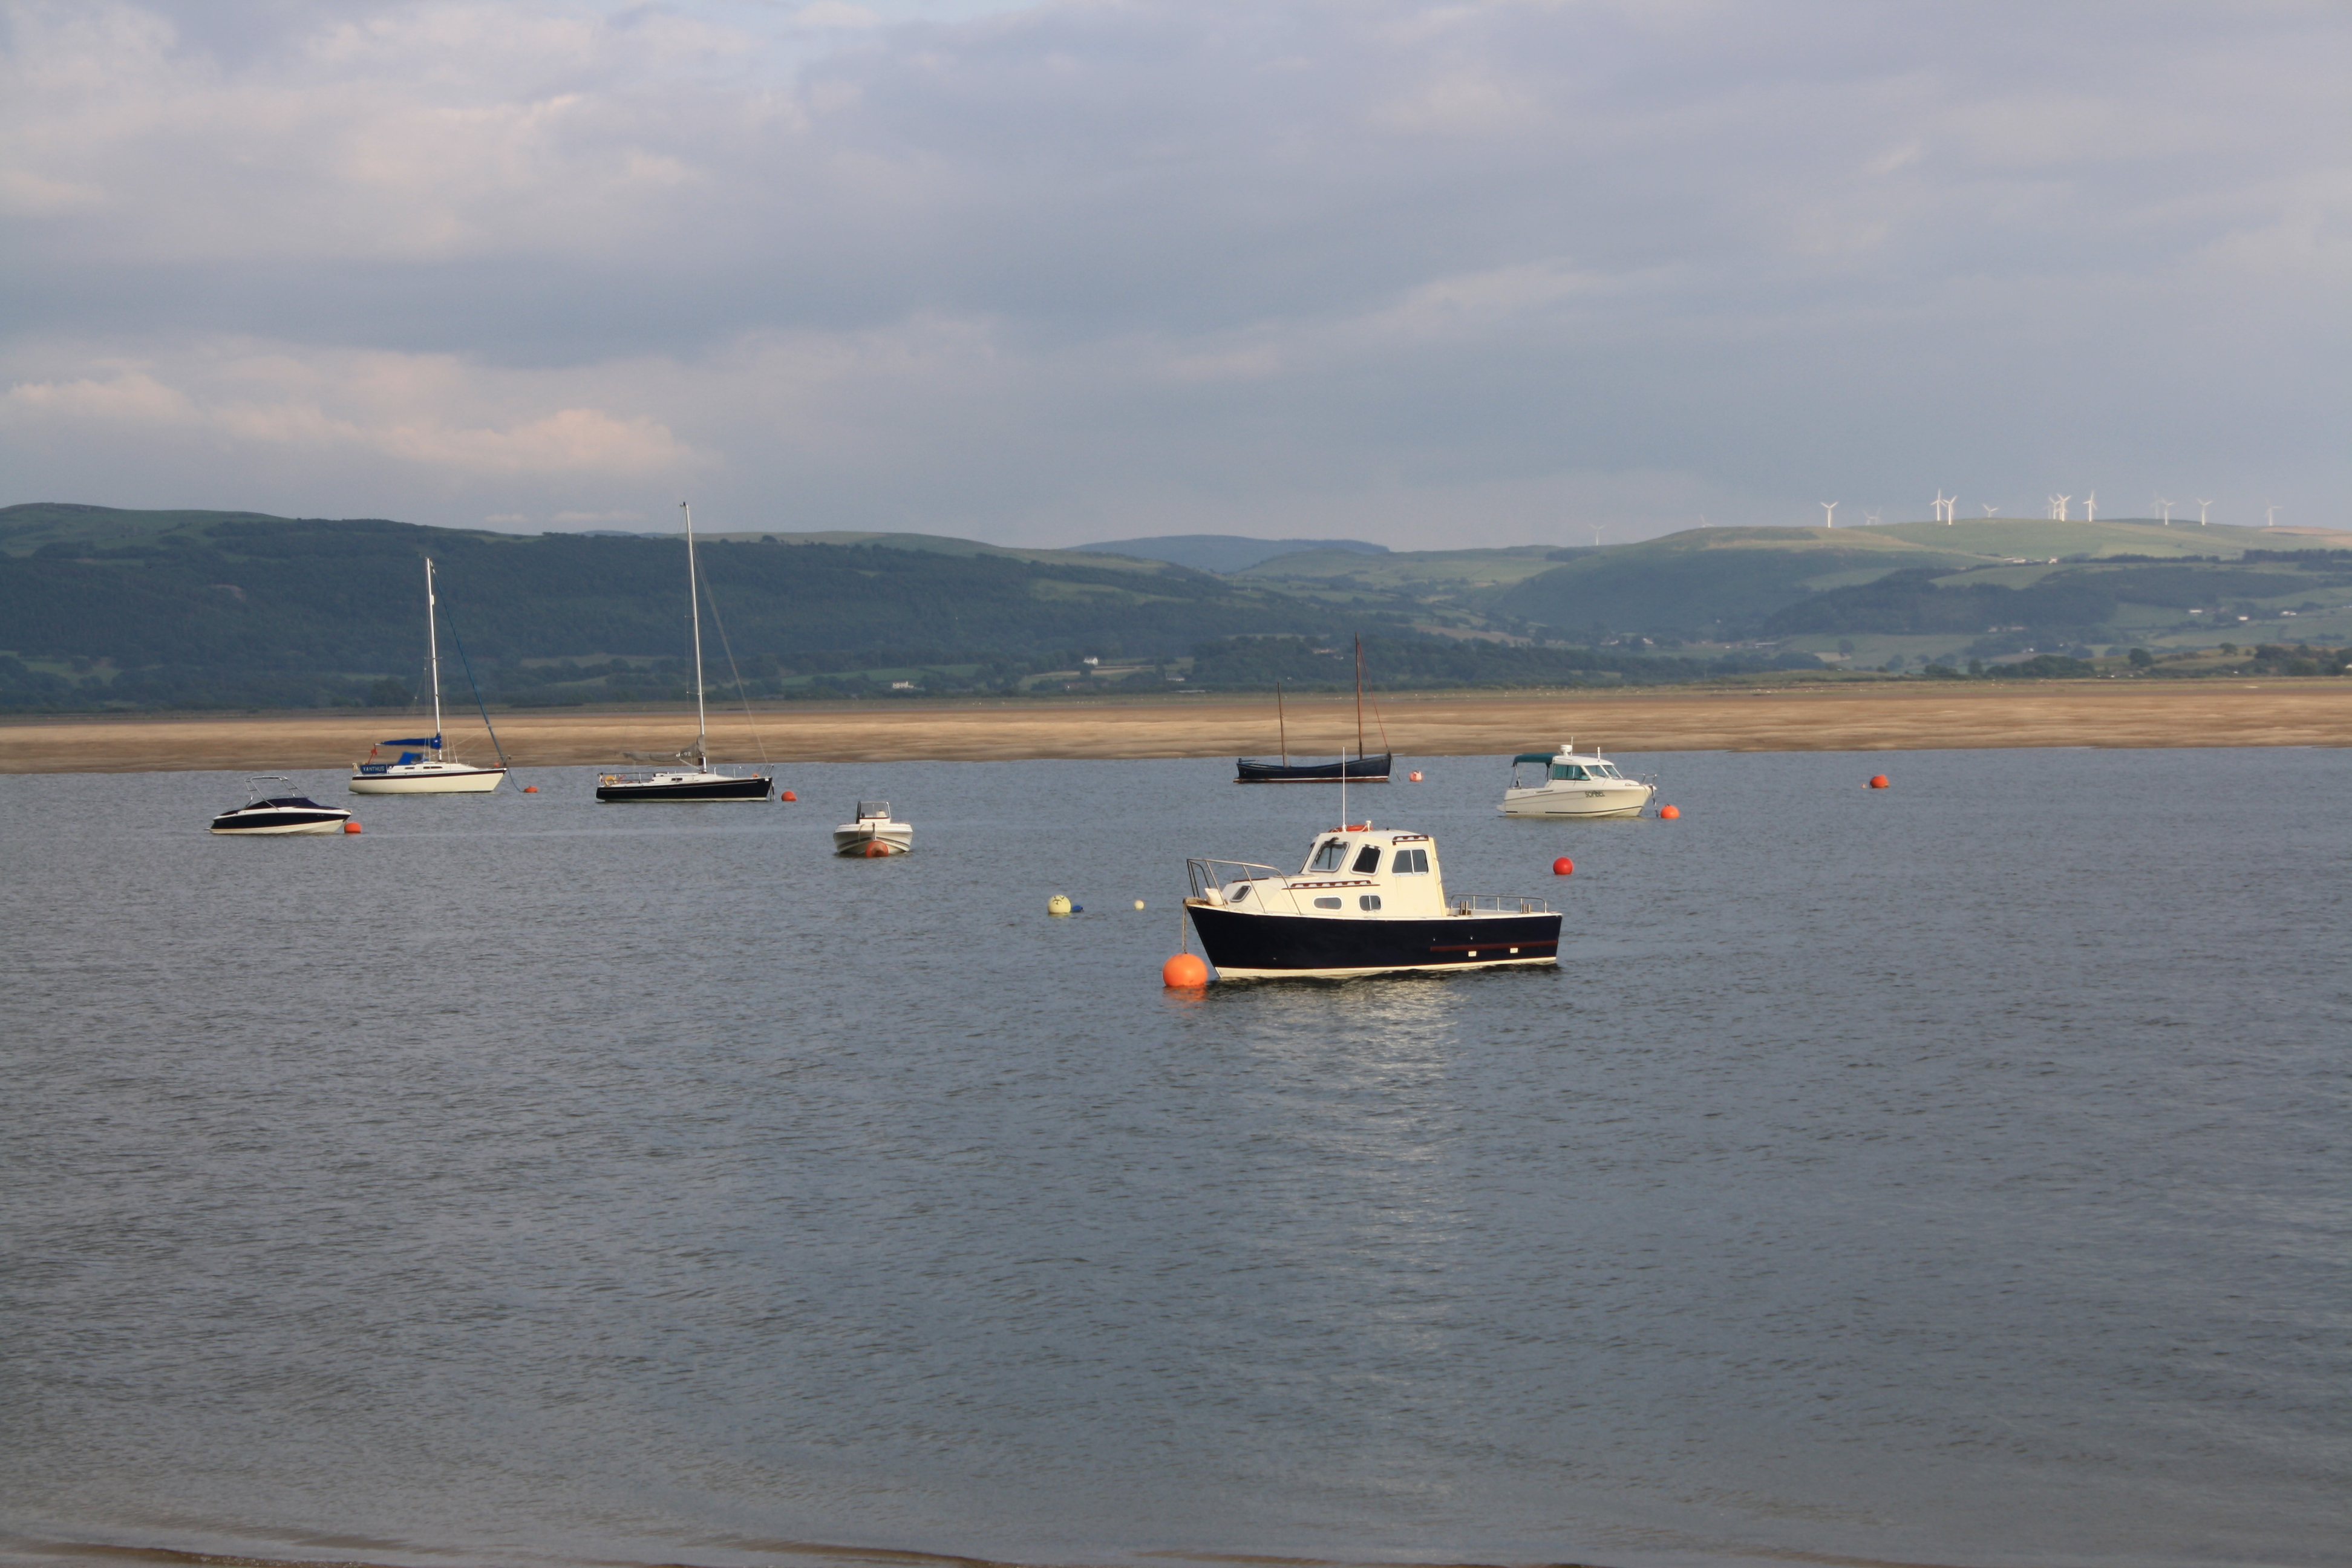 Boats in the Aberdovey Estuary